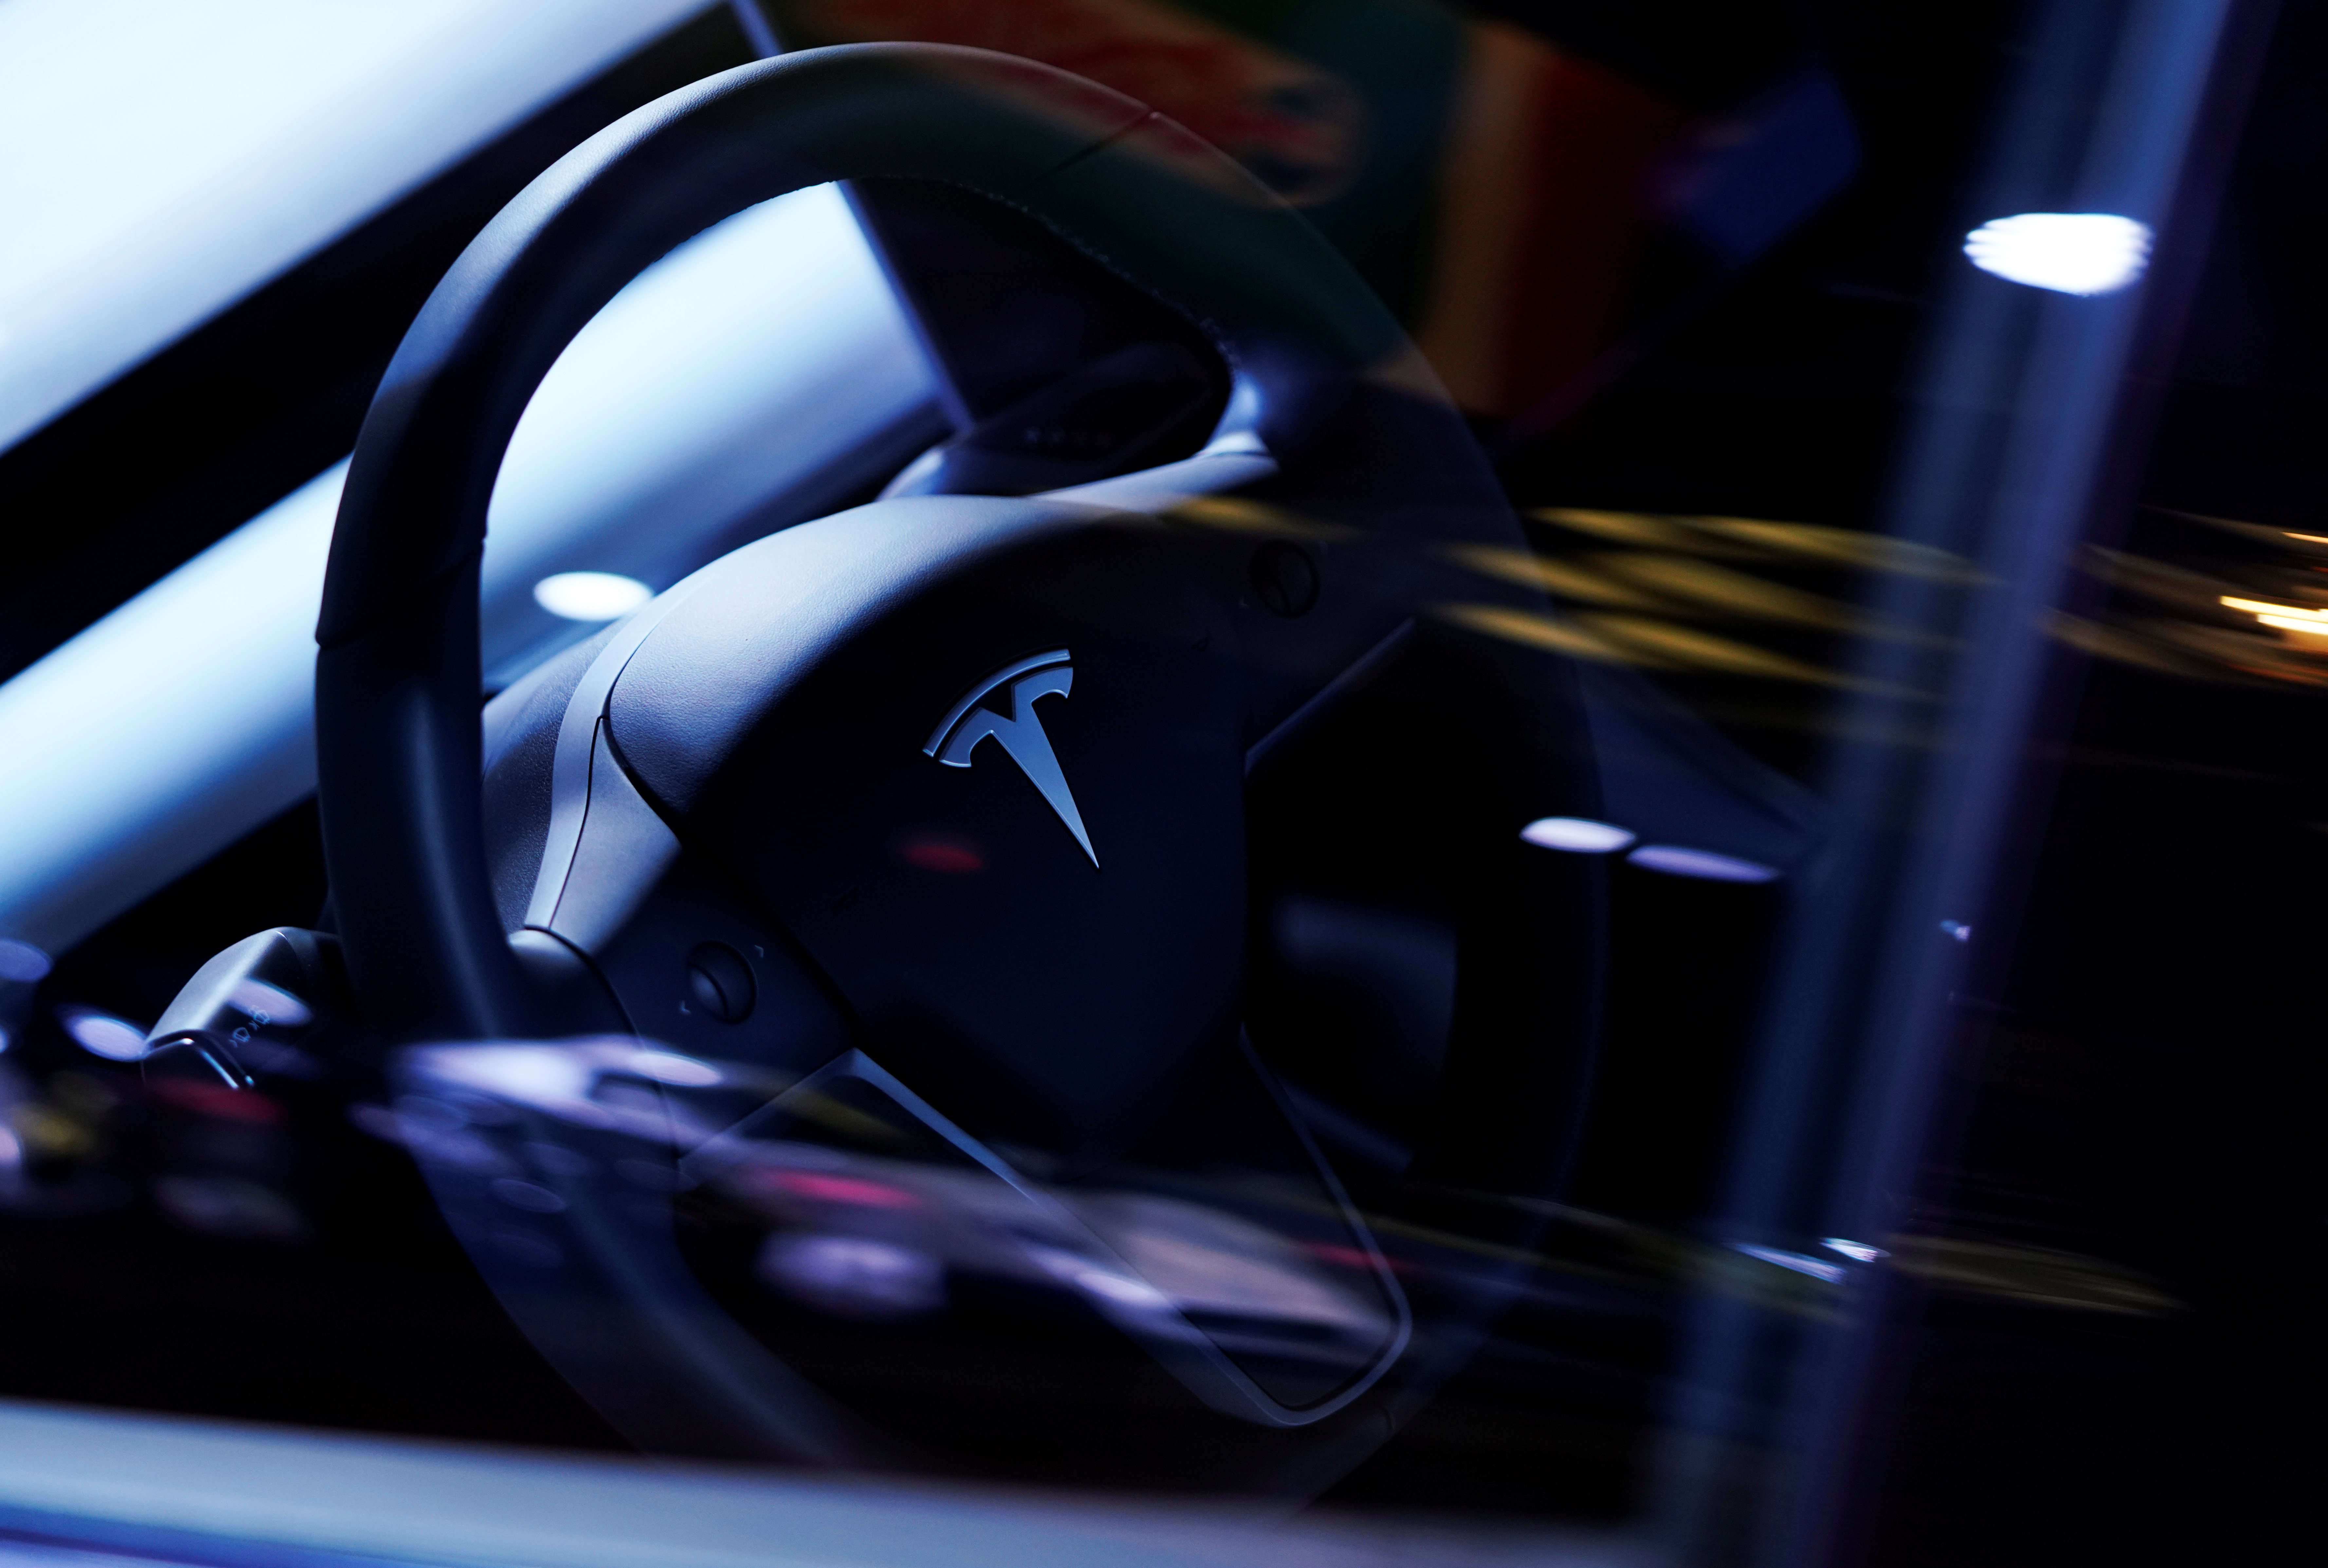 A Tesla Model S steering wheel is on display at the Canadian International AutoShow in Toronto, Ontario, Canada, February 13, 2019.   REUTERS/Mark Blinch